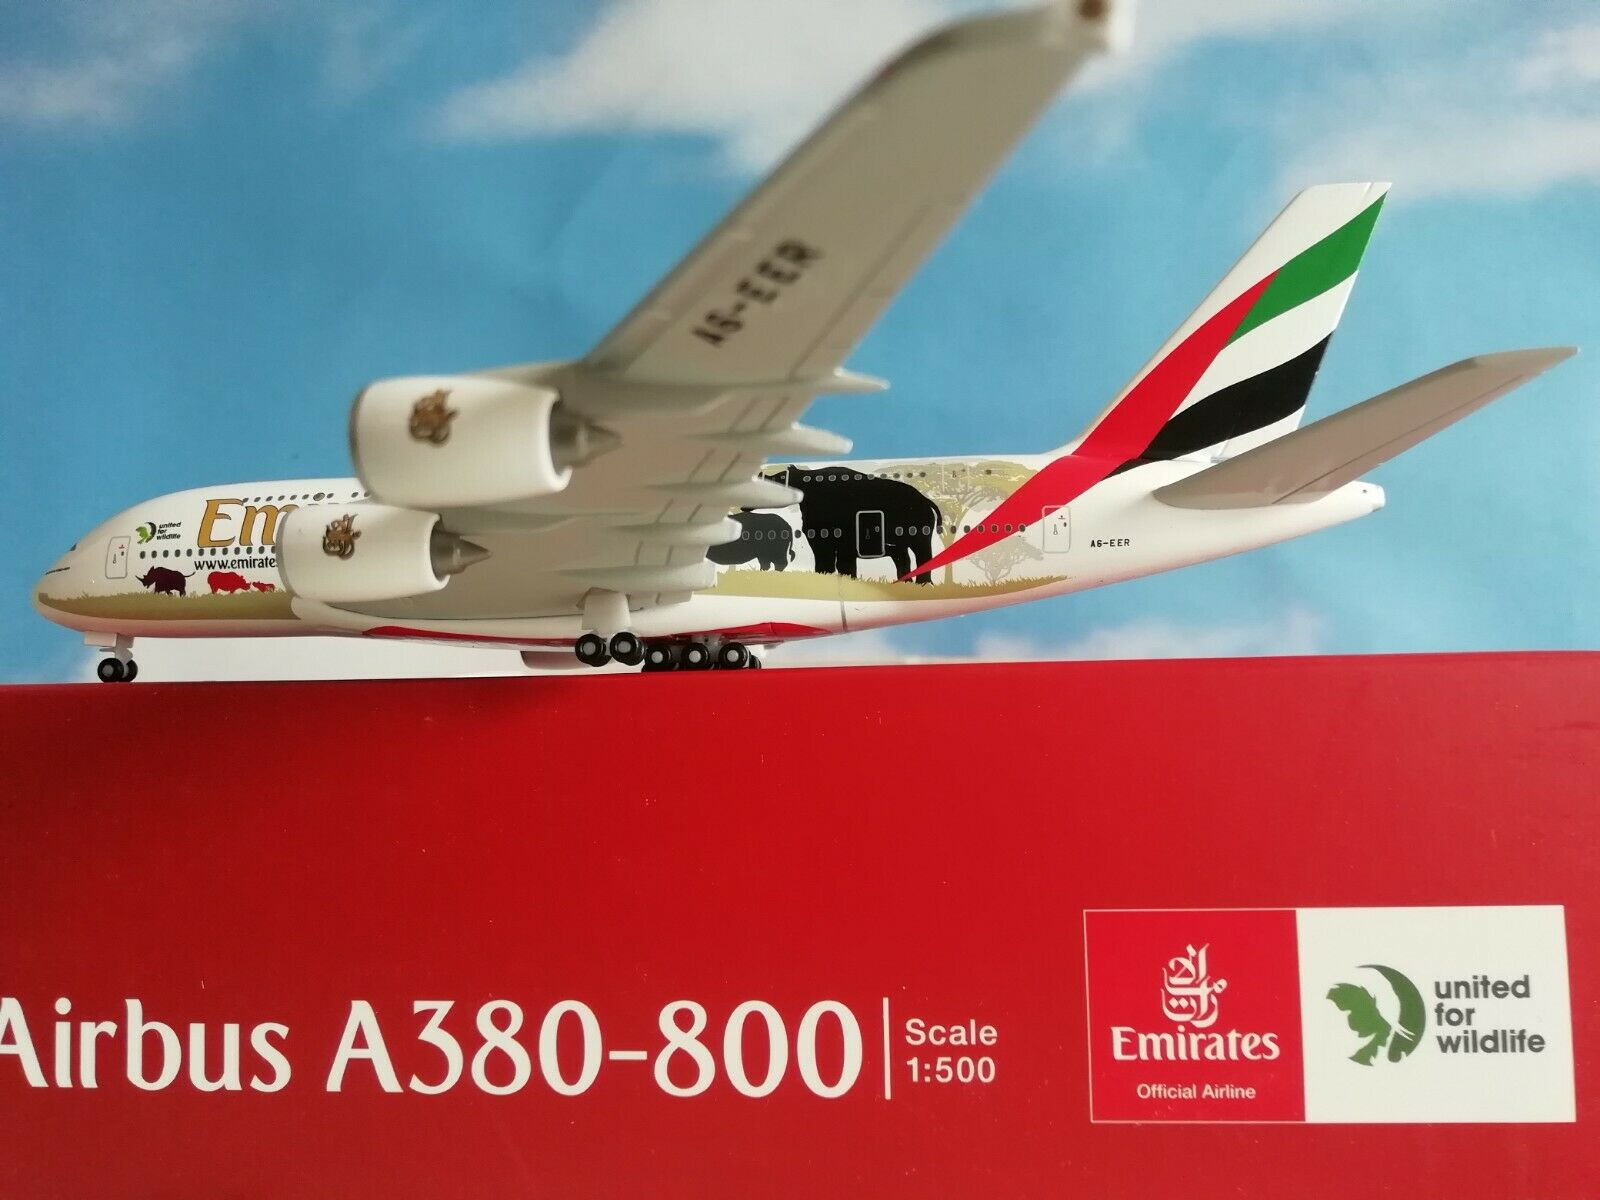 532723  Emirates Airbus A380  United for Wildlife    (No.2) Herpa Wings 1 500 e2d6d4